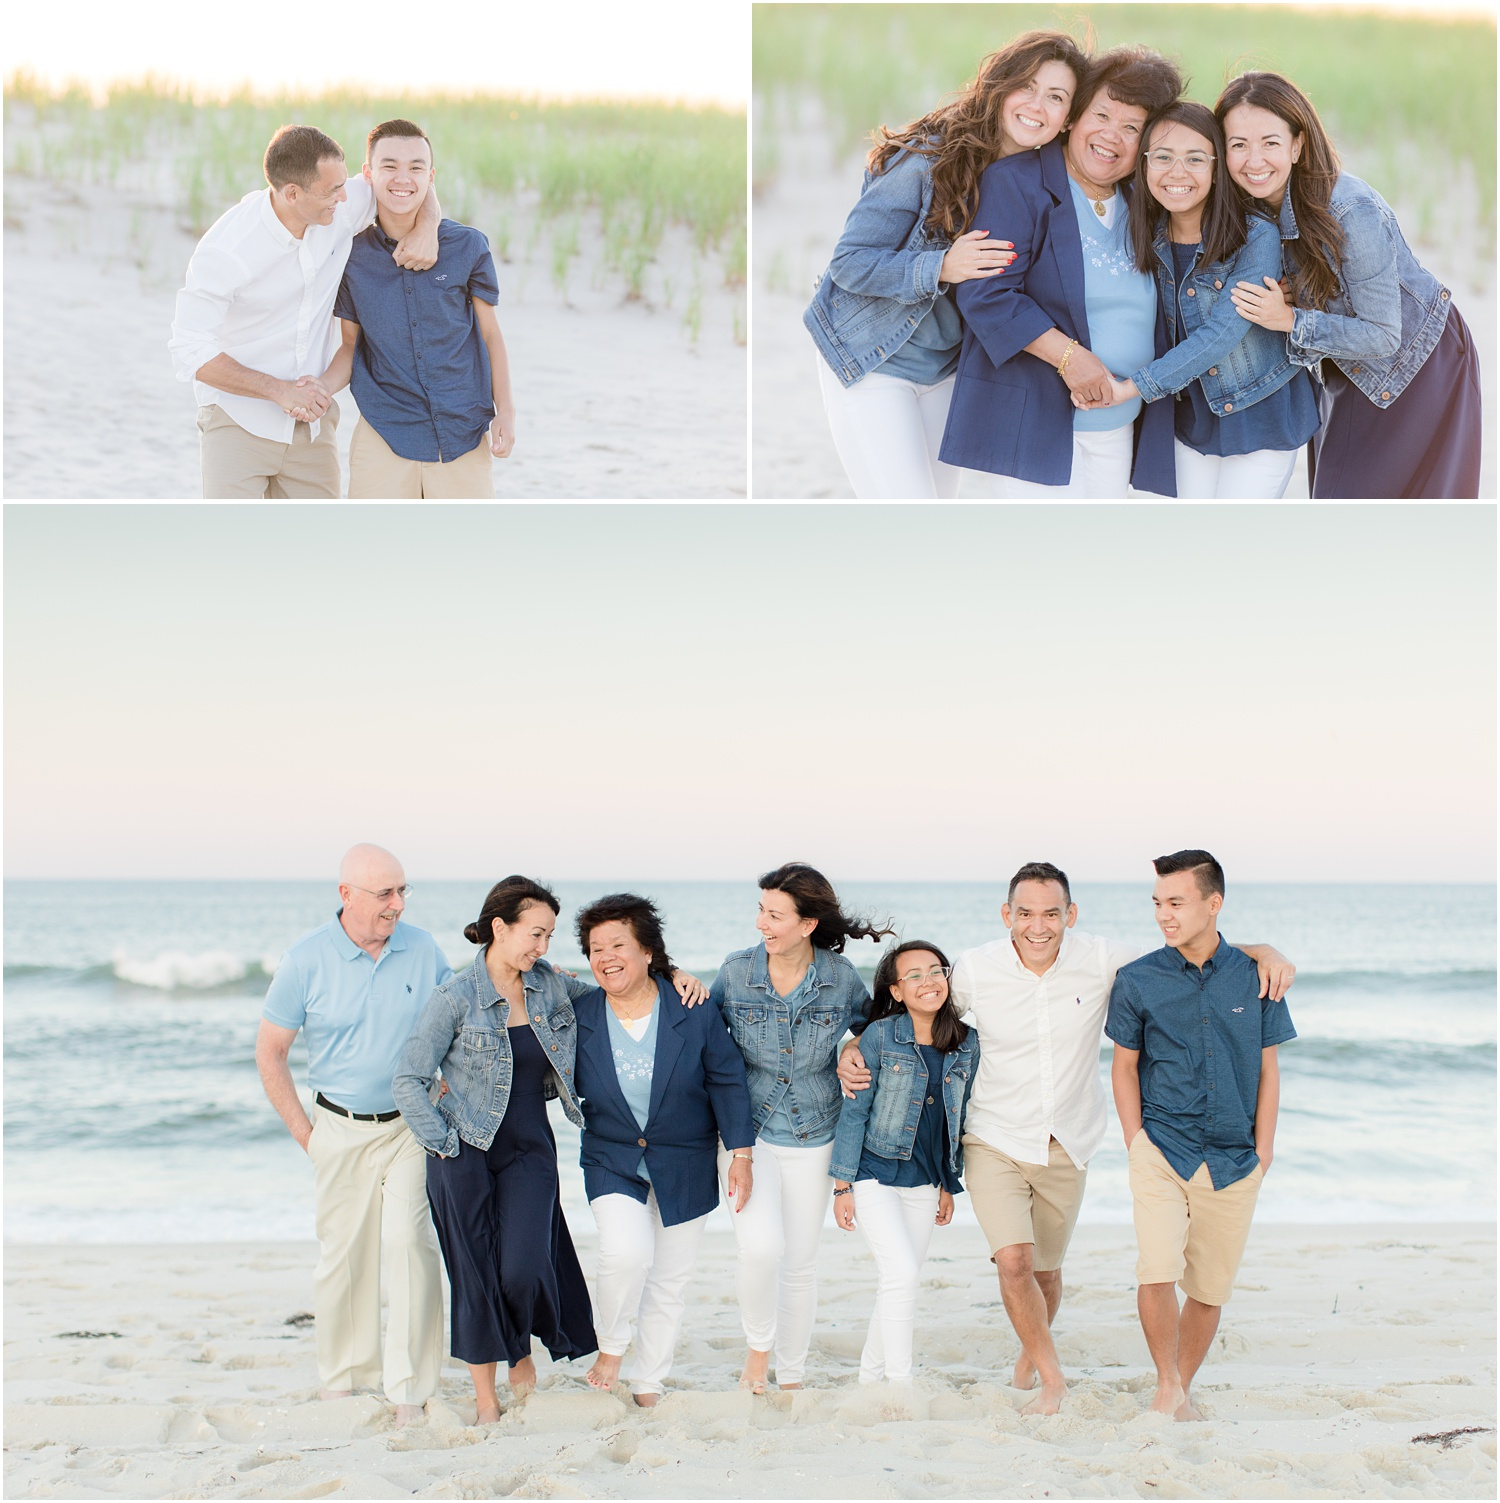 fun natural extended family photos at the beach in NJ.